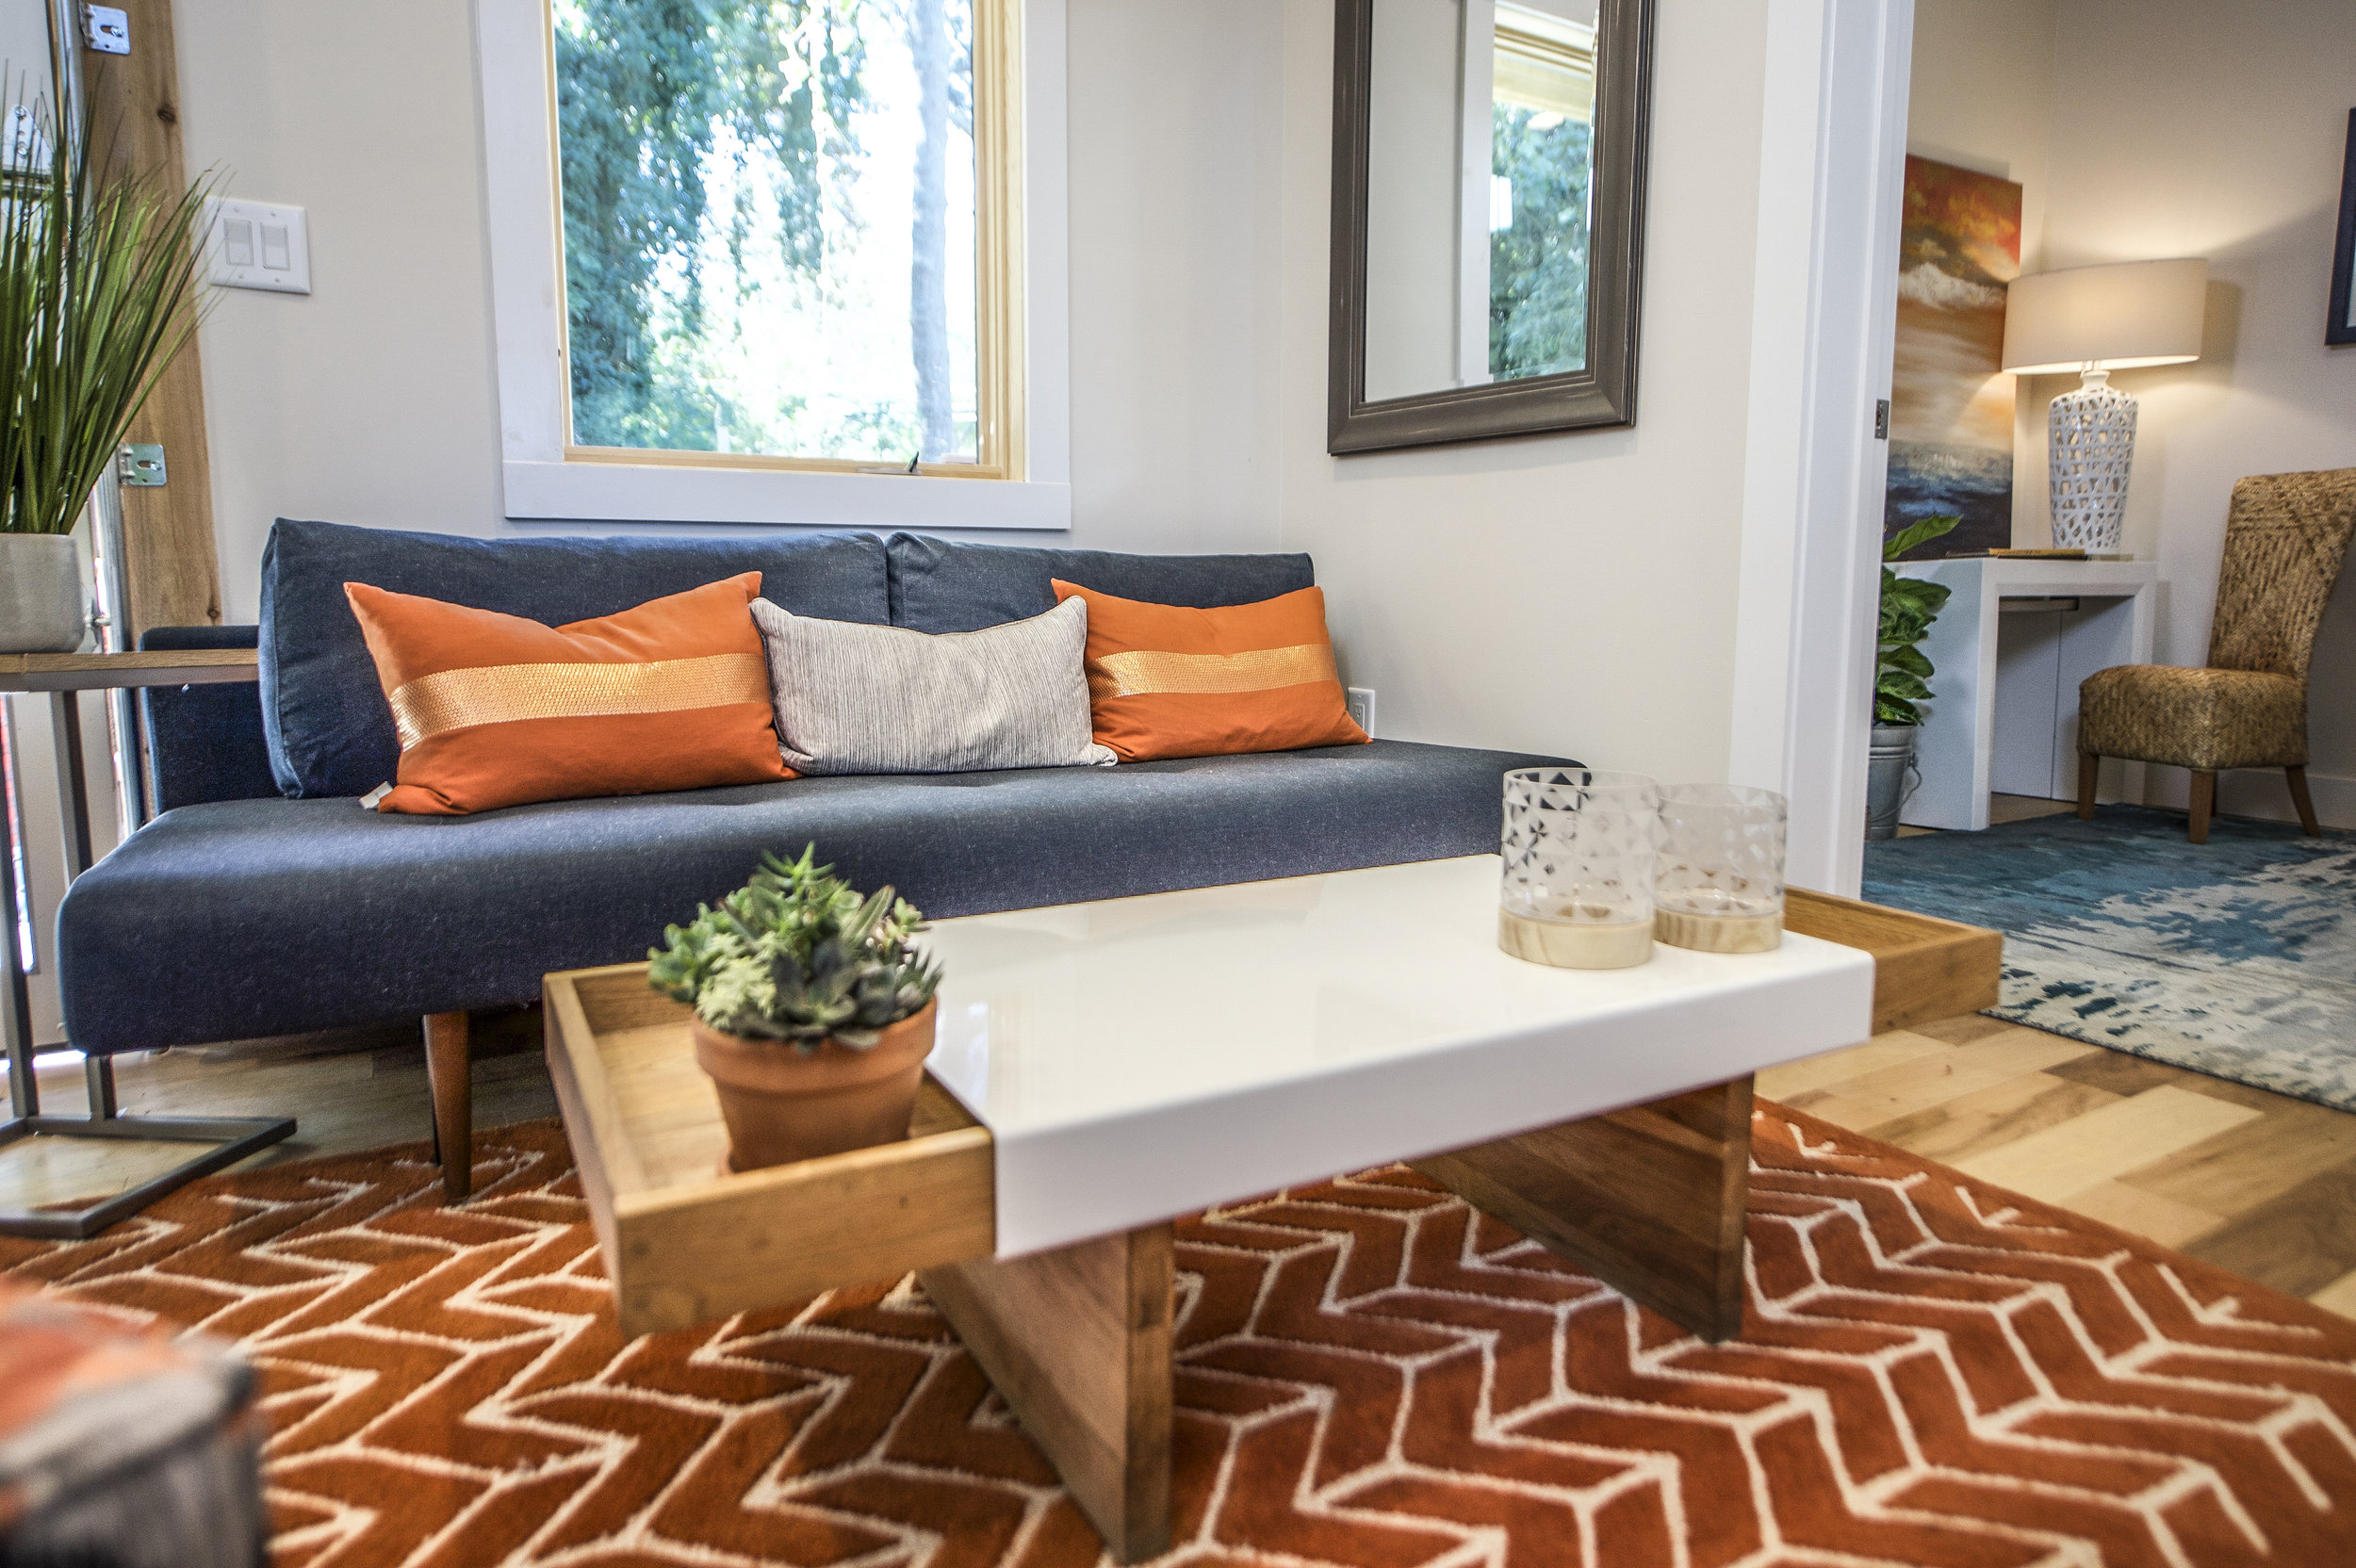 Urban Micro Home by Wind River Tiny Homes - glass garage door by Chattanooga Garage Door, sofa and coffee table by Smart Furniture